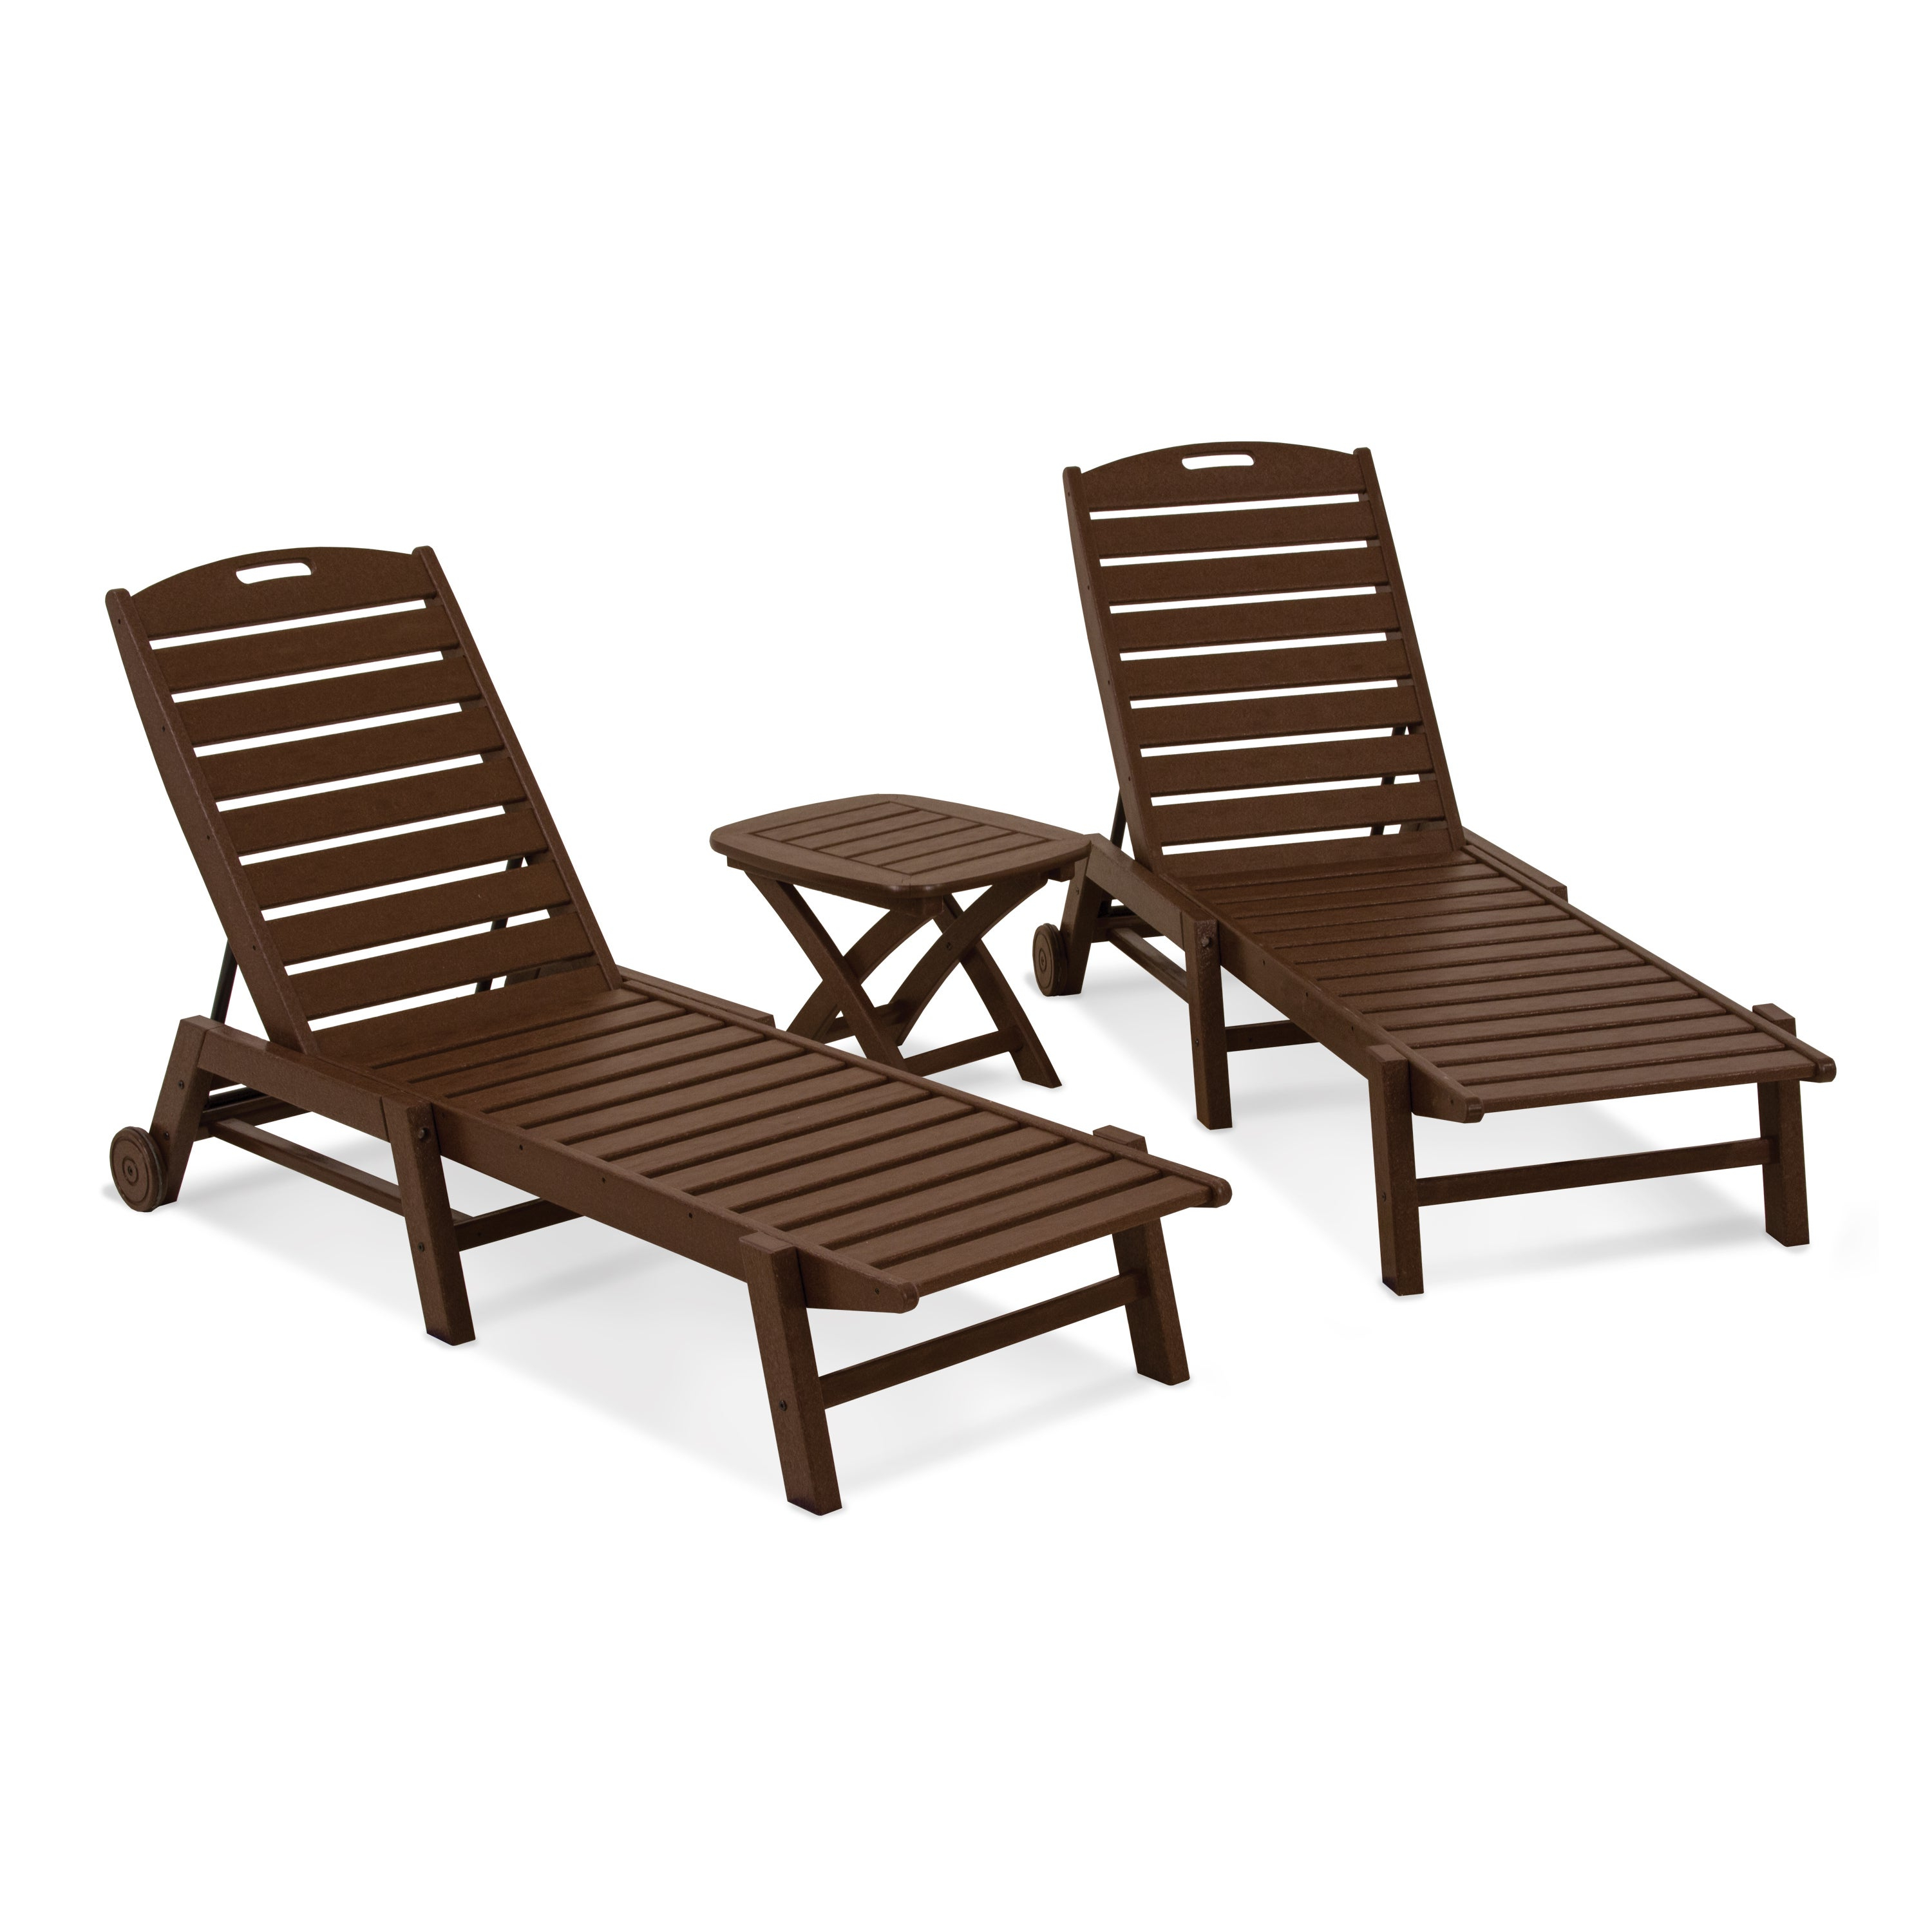 Nautical 3 Piece Outdoor Chaise Lounge Sets With Table Inside Favorite Polywood® Nautical 3 Piece Outdoor Chaise Lounge Set With Table (View 2 of 25)